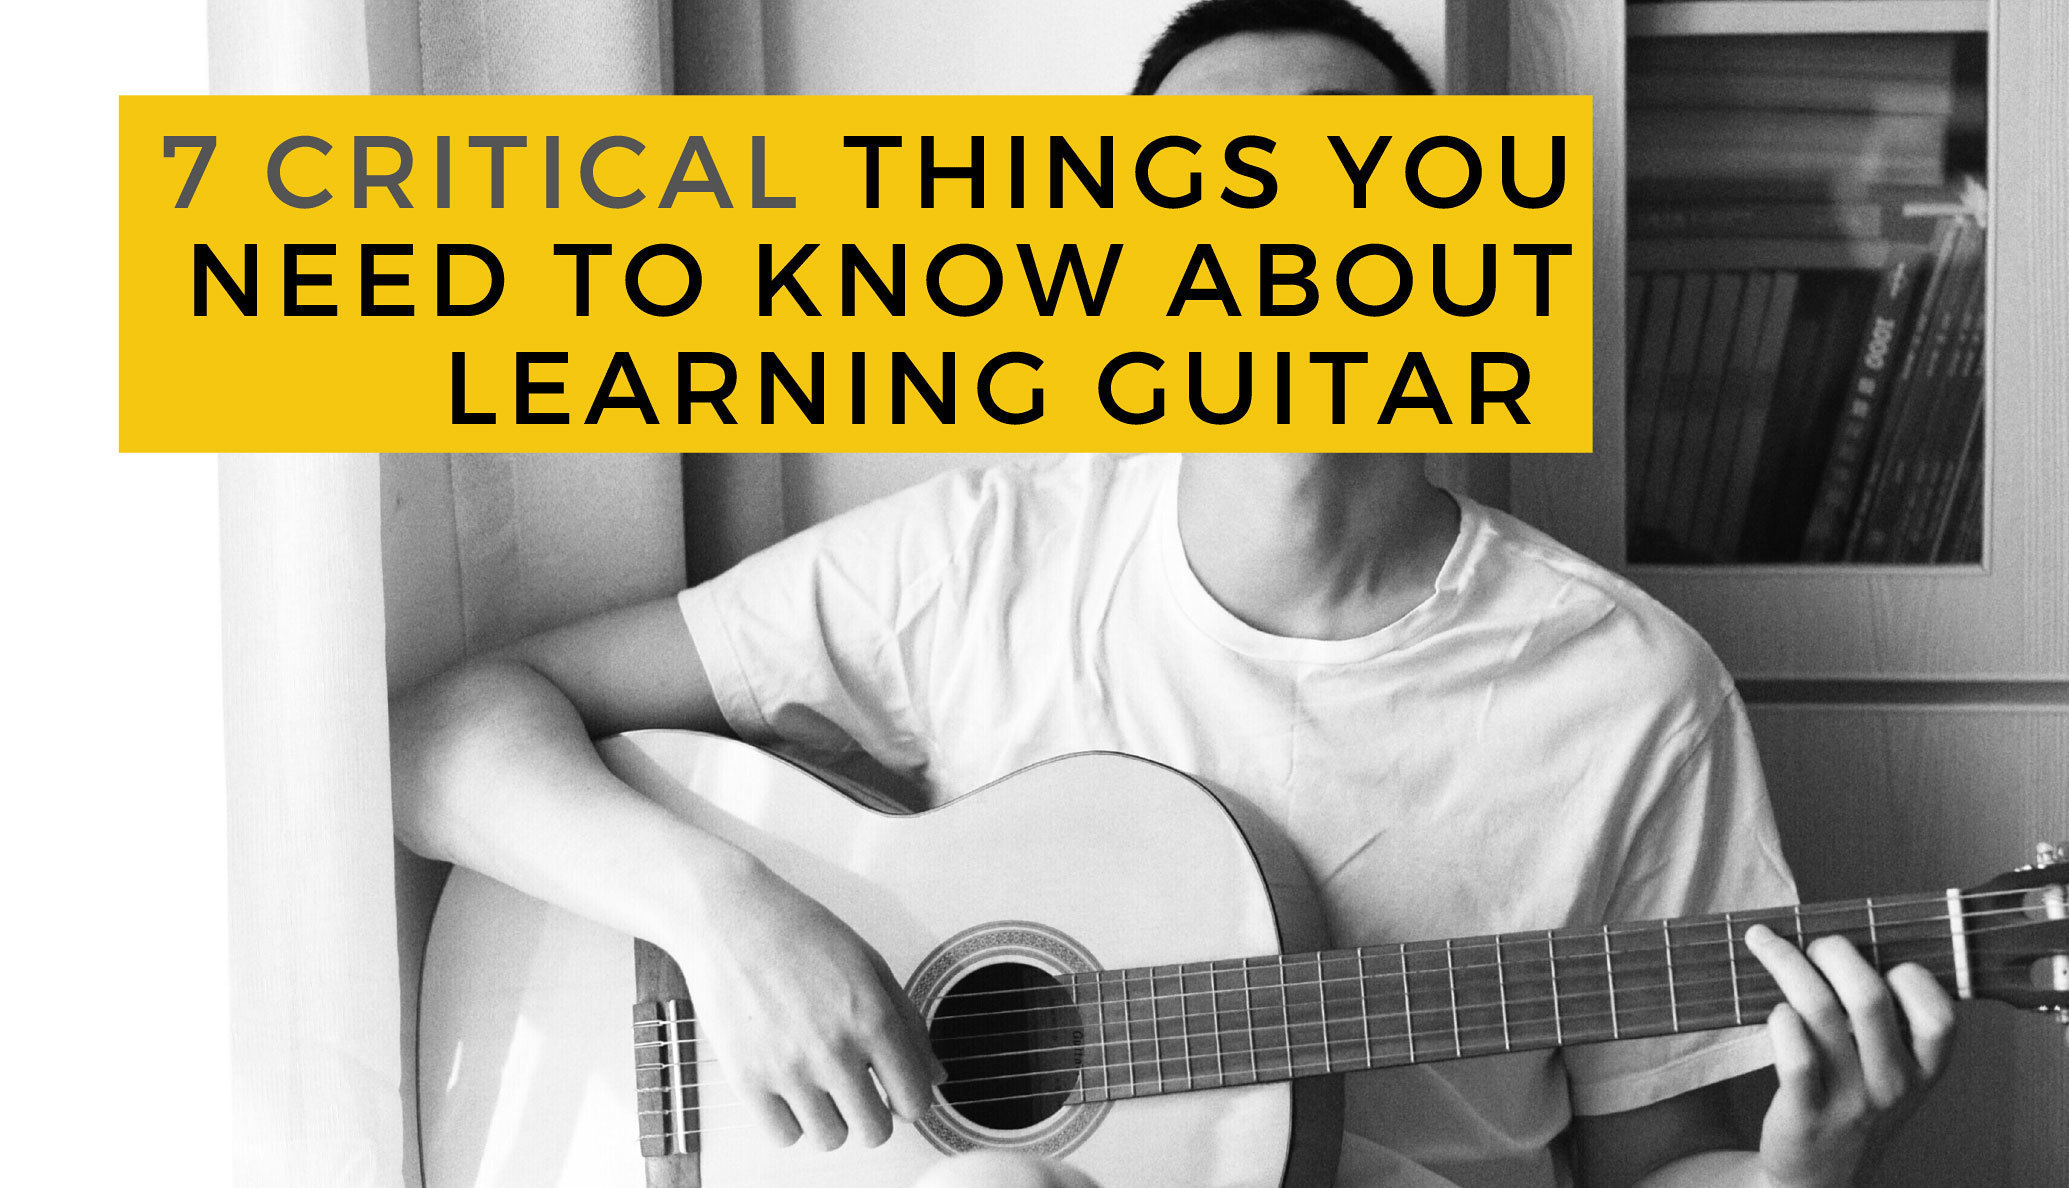 How-To-Learn-Guitar-7-Critical-Tips-For-Beginners